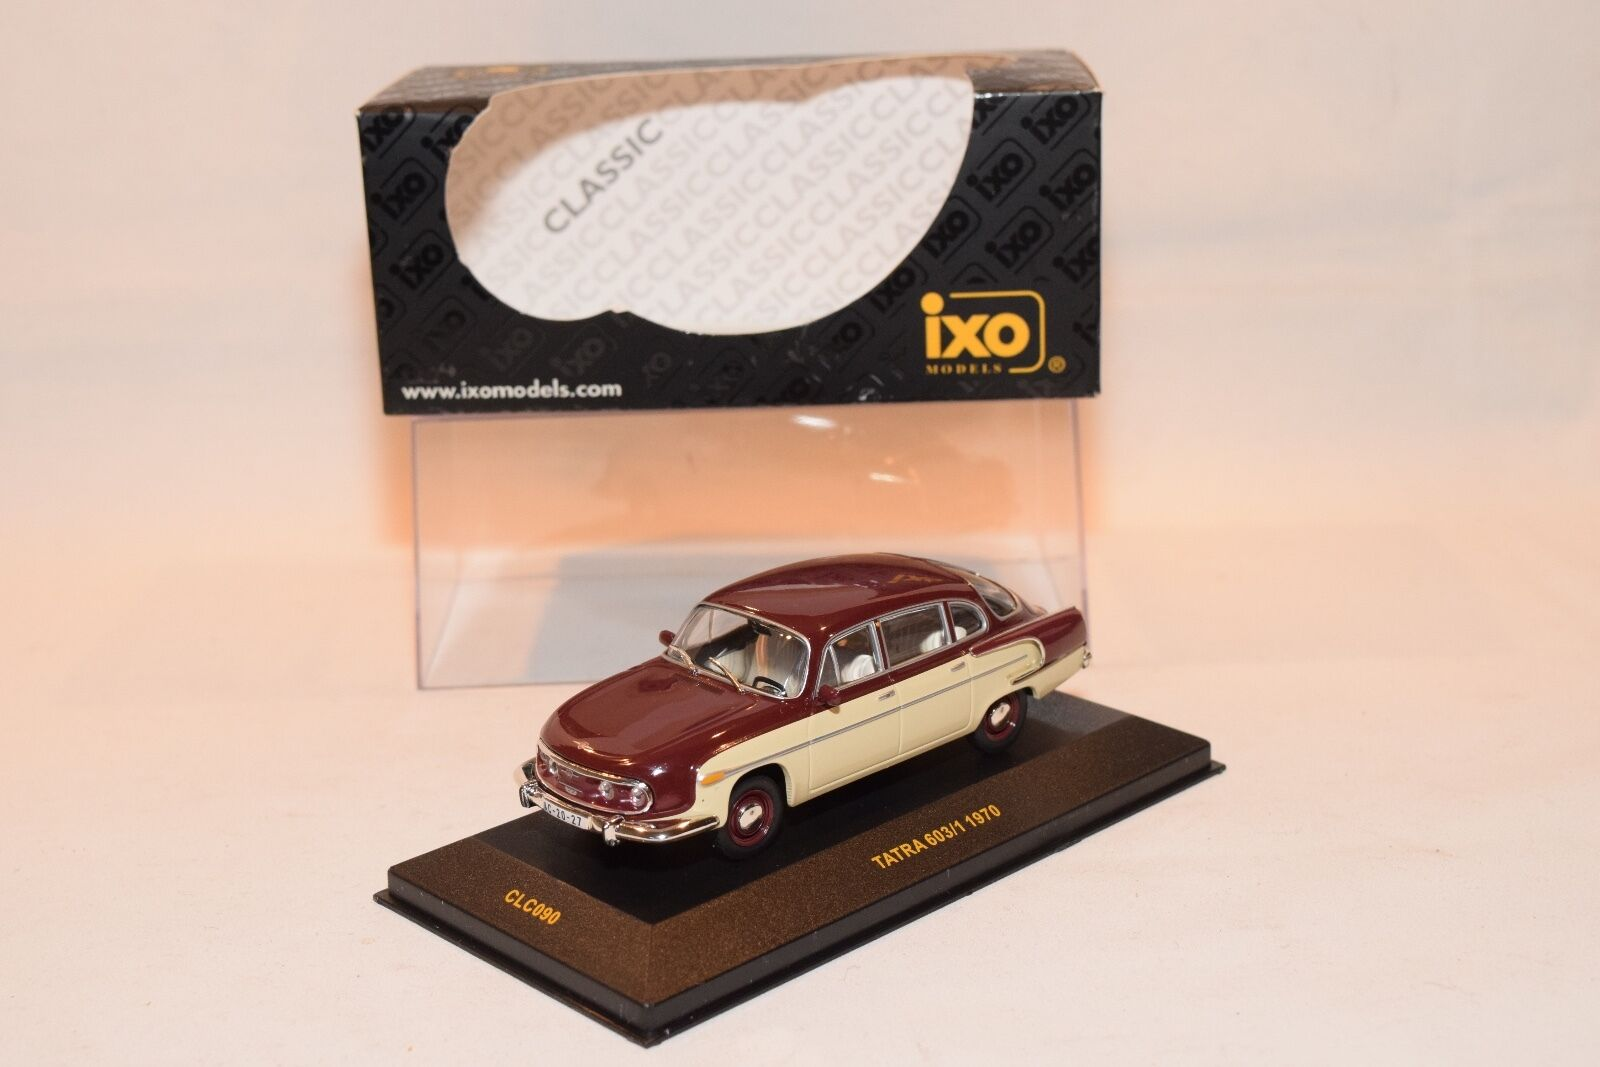 IXO CLC090 CLC 090 TATRA 603-1 603 1 1970 MAROON WITH CREAM MINT BOXED RARE